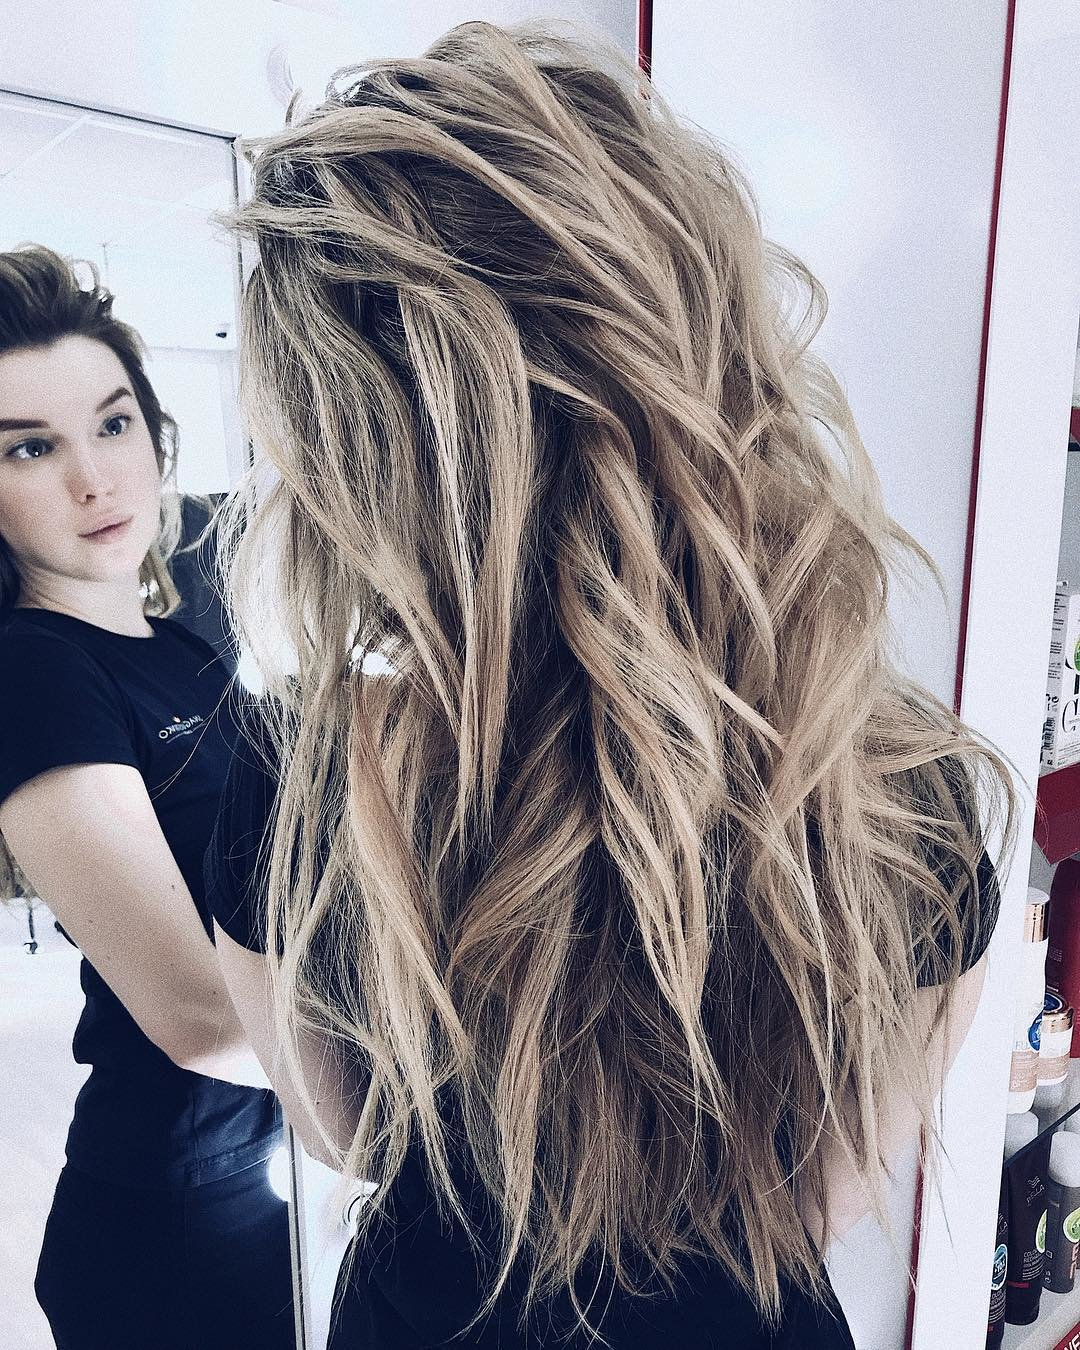 Free 10 Gorgeous Long Wavy Perm Hairstyles Long Hair Styles 2019 Wallpaper